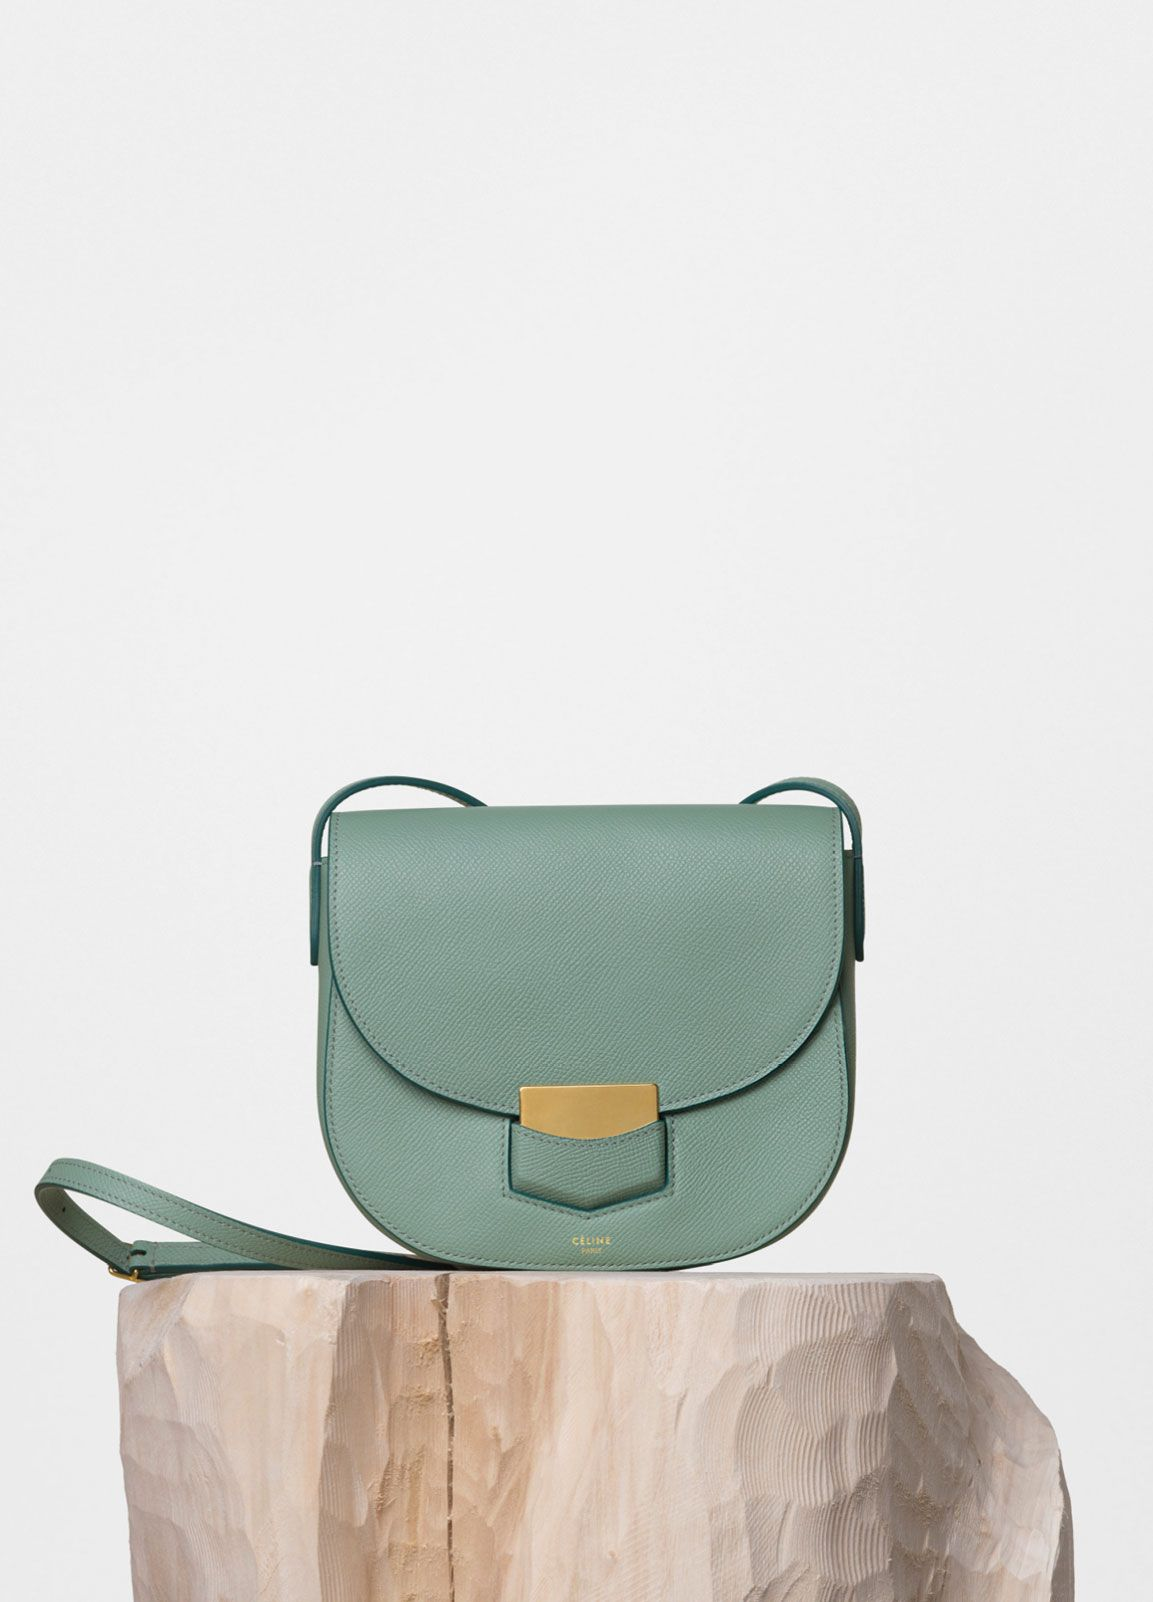 celine - SMALL TROTTEUR SHOULDER BAG IN JADE GRAINED CALFSKIN ... 4d88512387db9